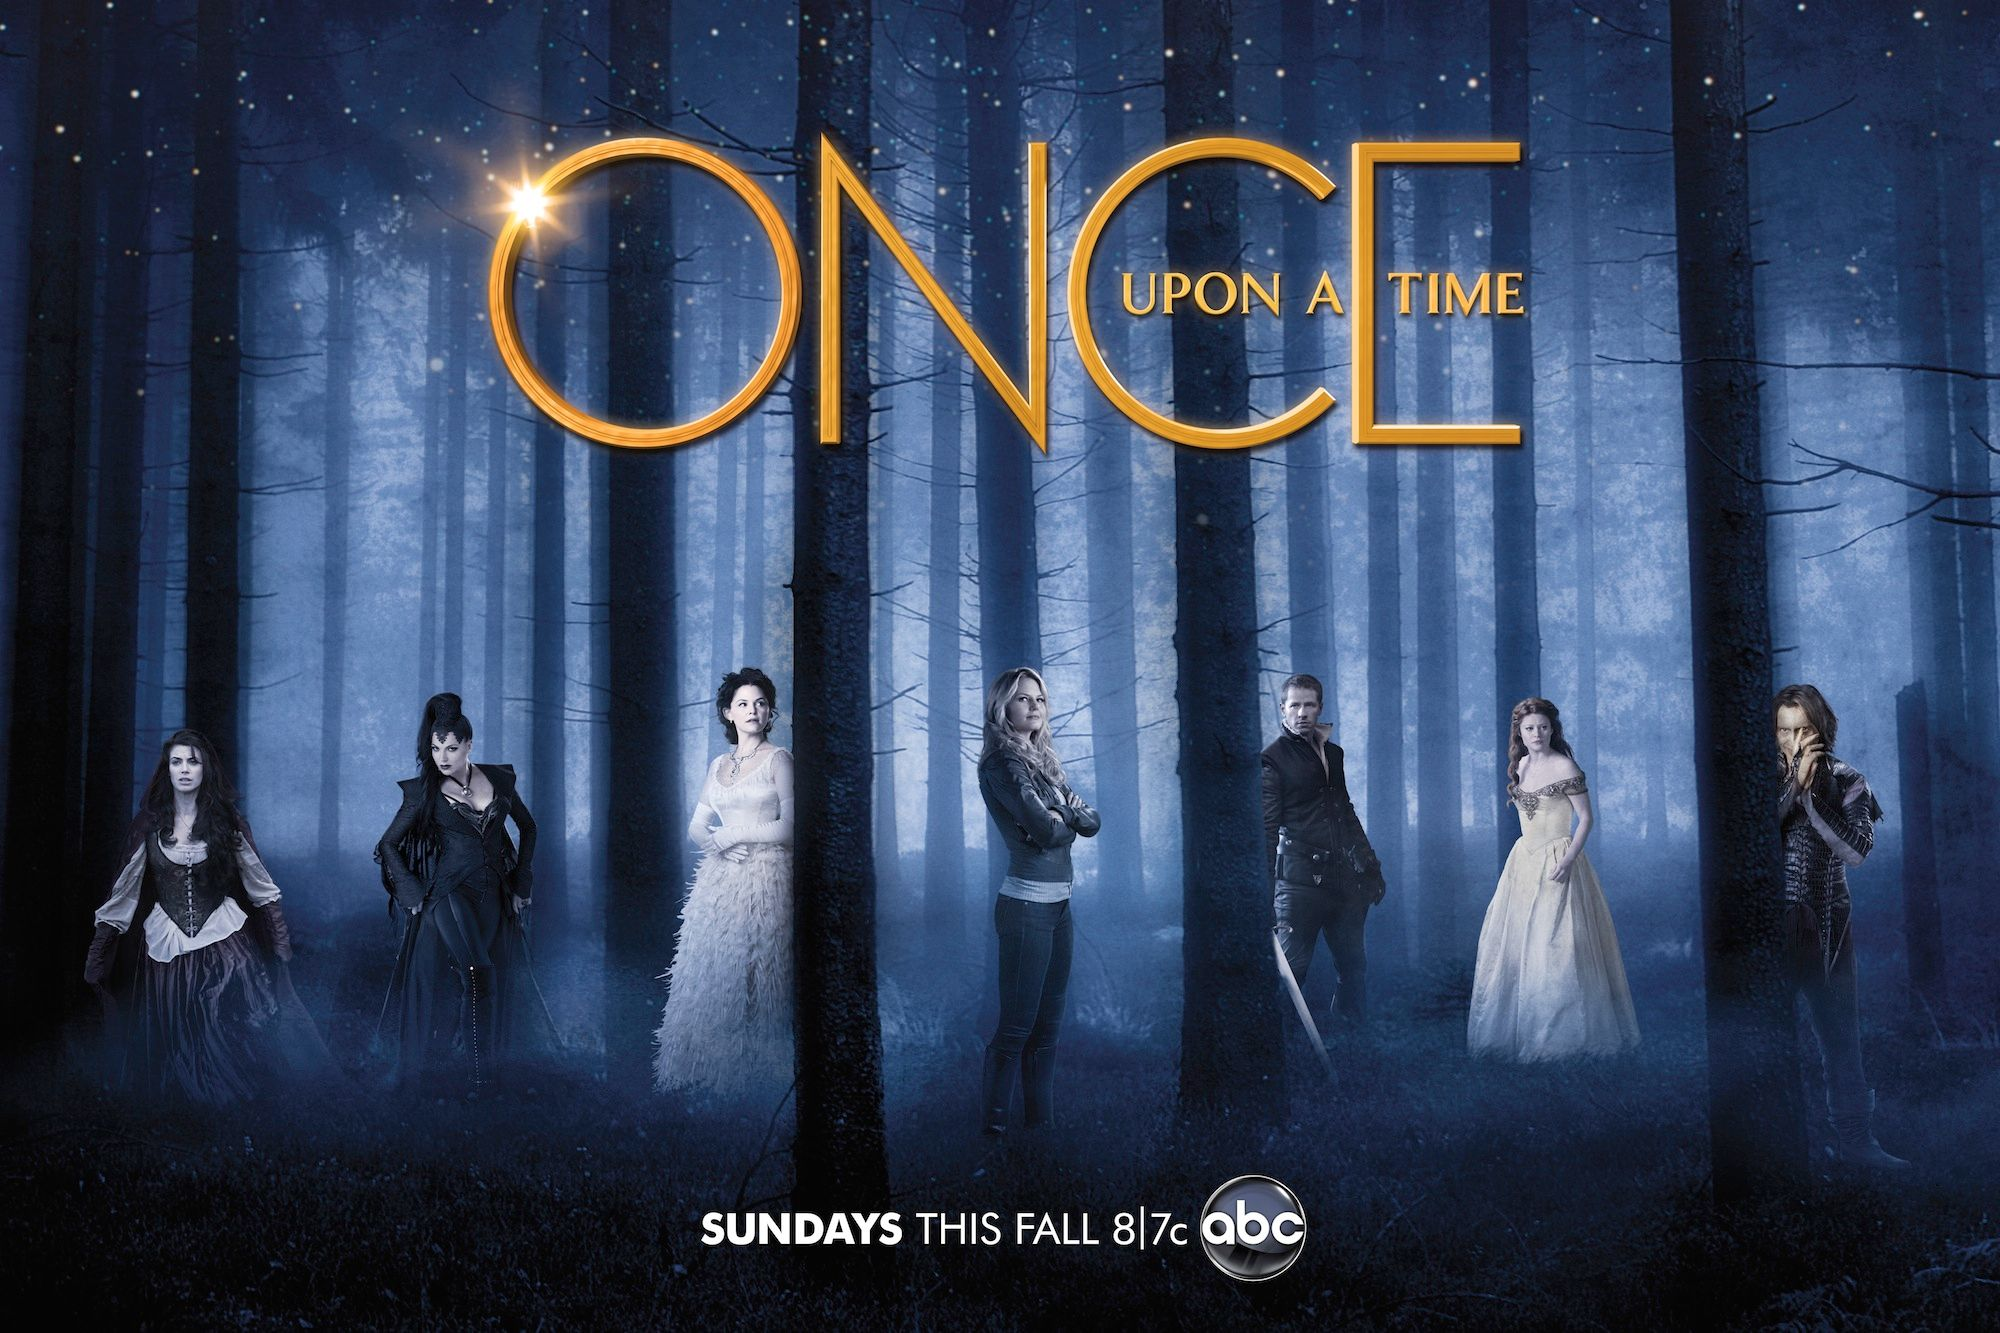 Comic Con ONCE UPON A TIME Panel Recap Featuring Showrunners Edward Kitsis And Adam Horowitz